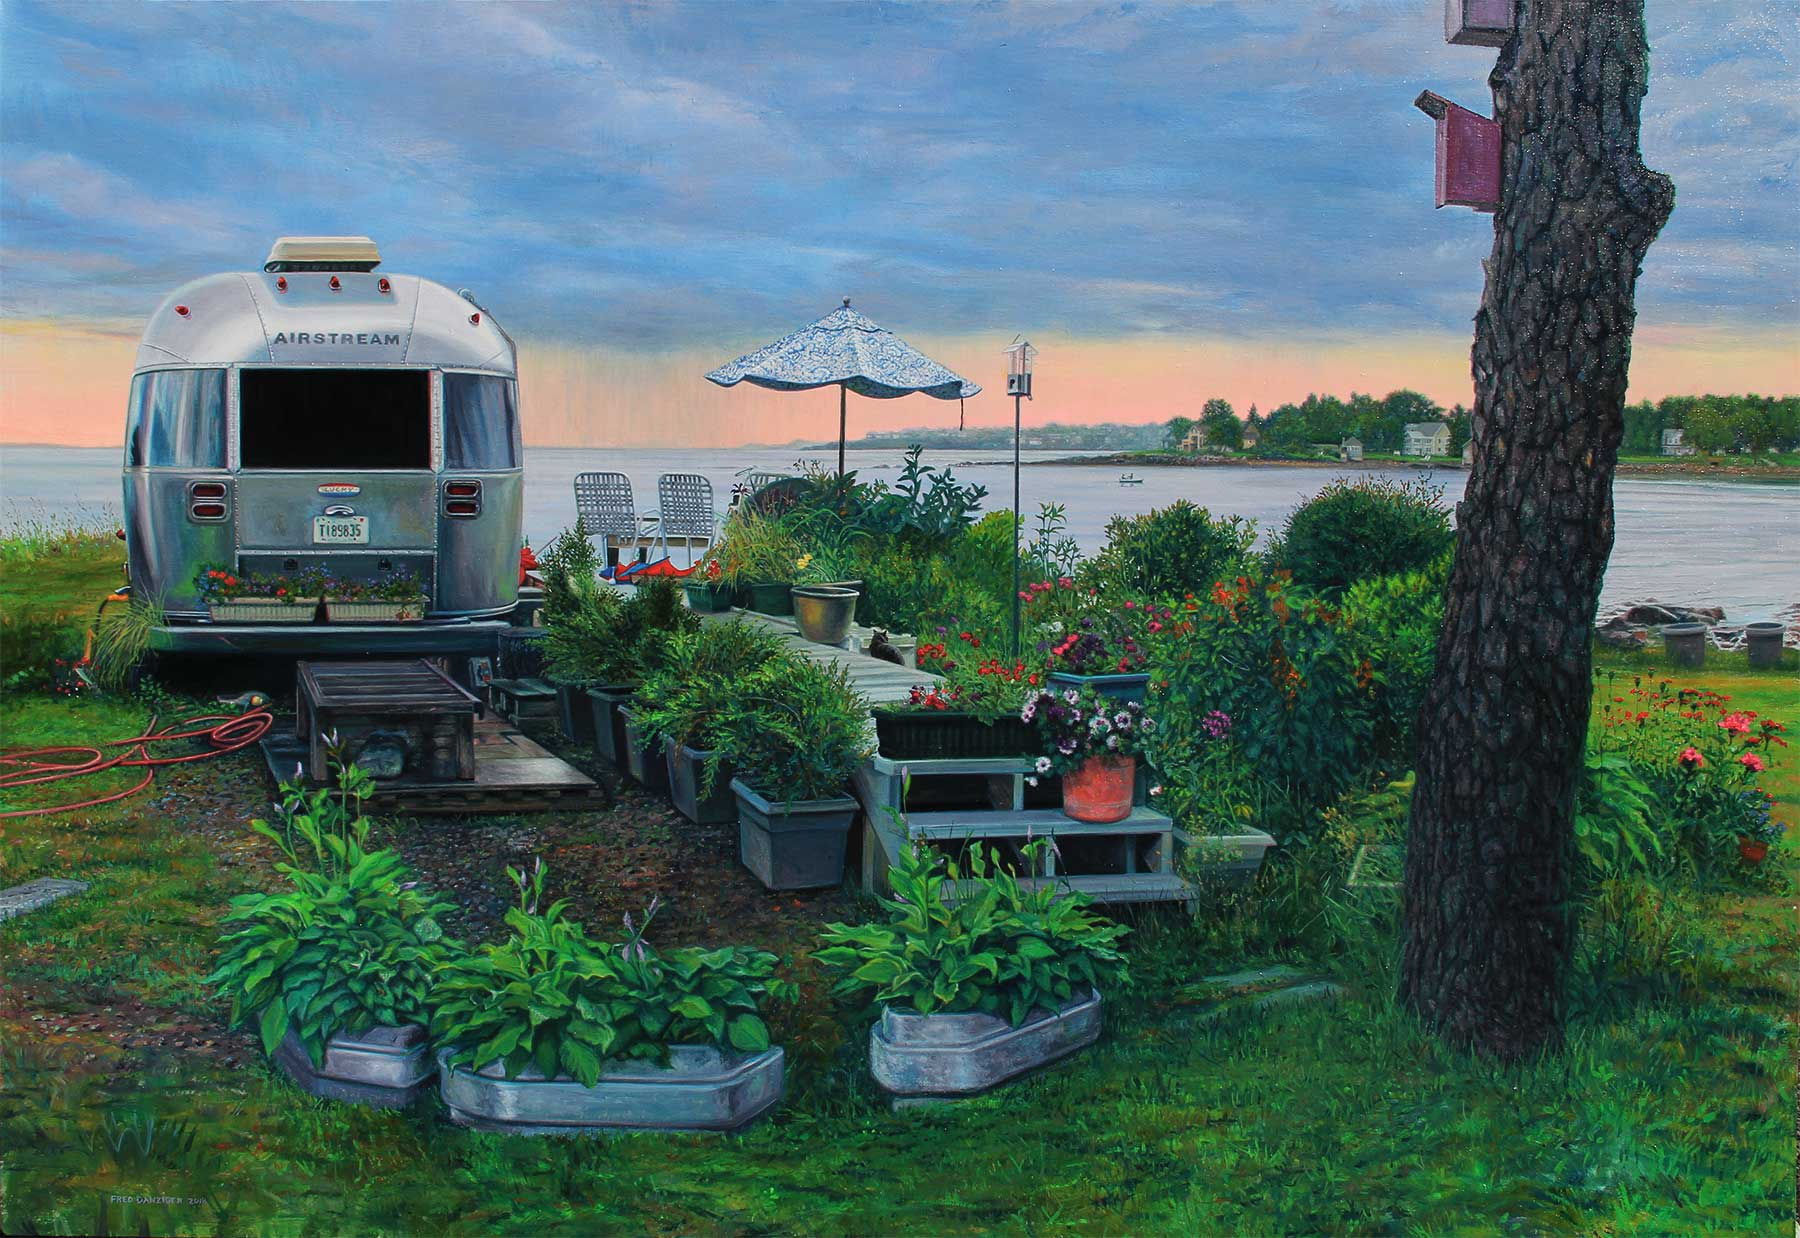 Airstream Trailer in Maine near Cape Neddick